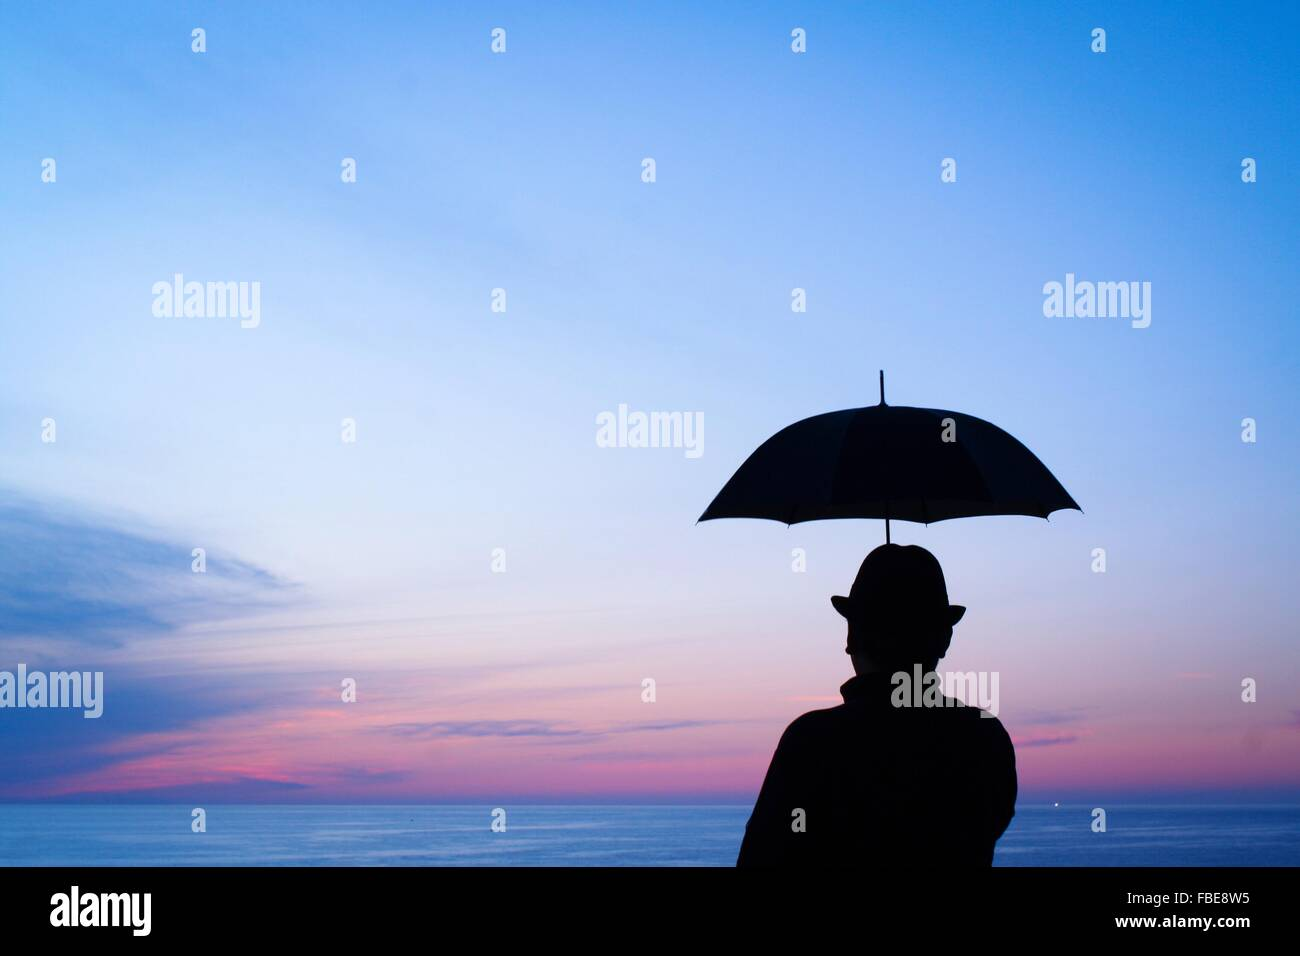 Rear View Of Silhouette Person Holding Umbrella Standing By Sea Stock Photo Alamy